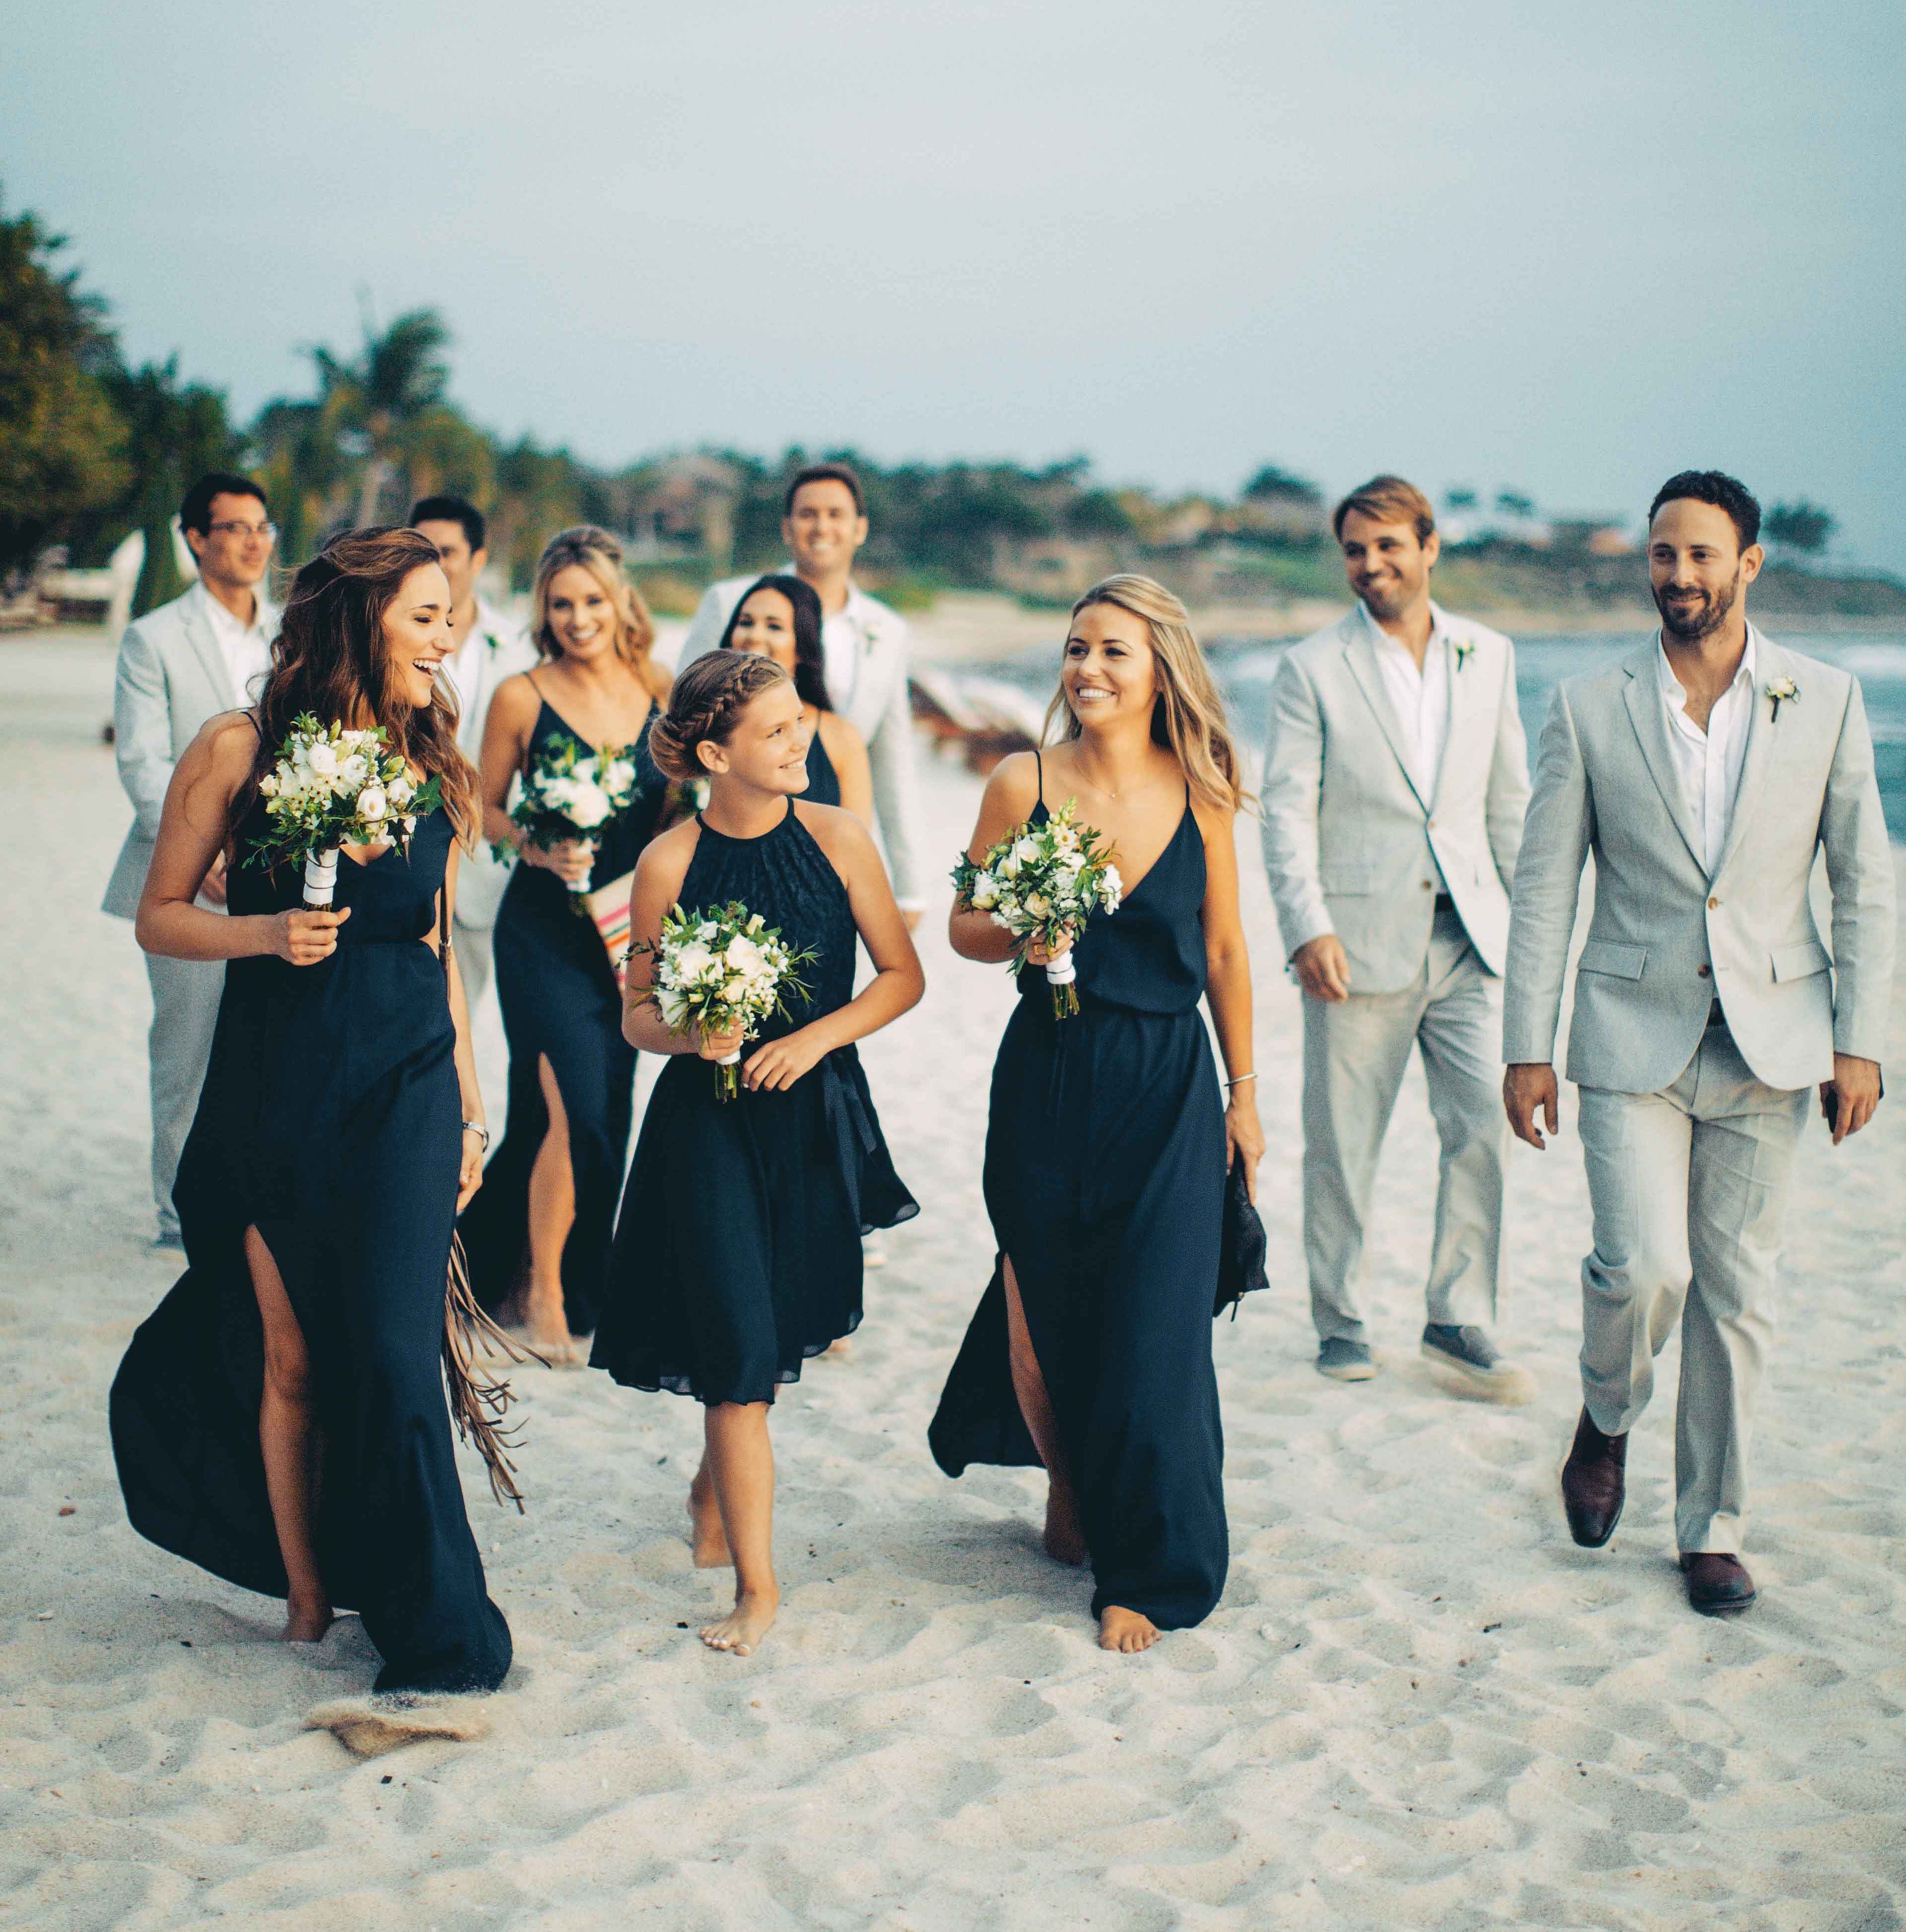 Beach wedding bridesmaids in navy blue dresses and